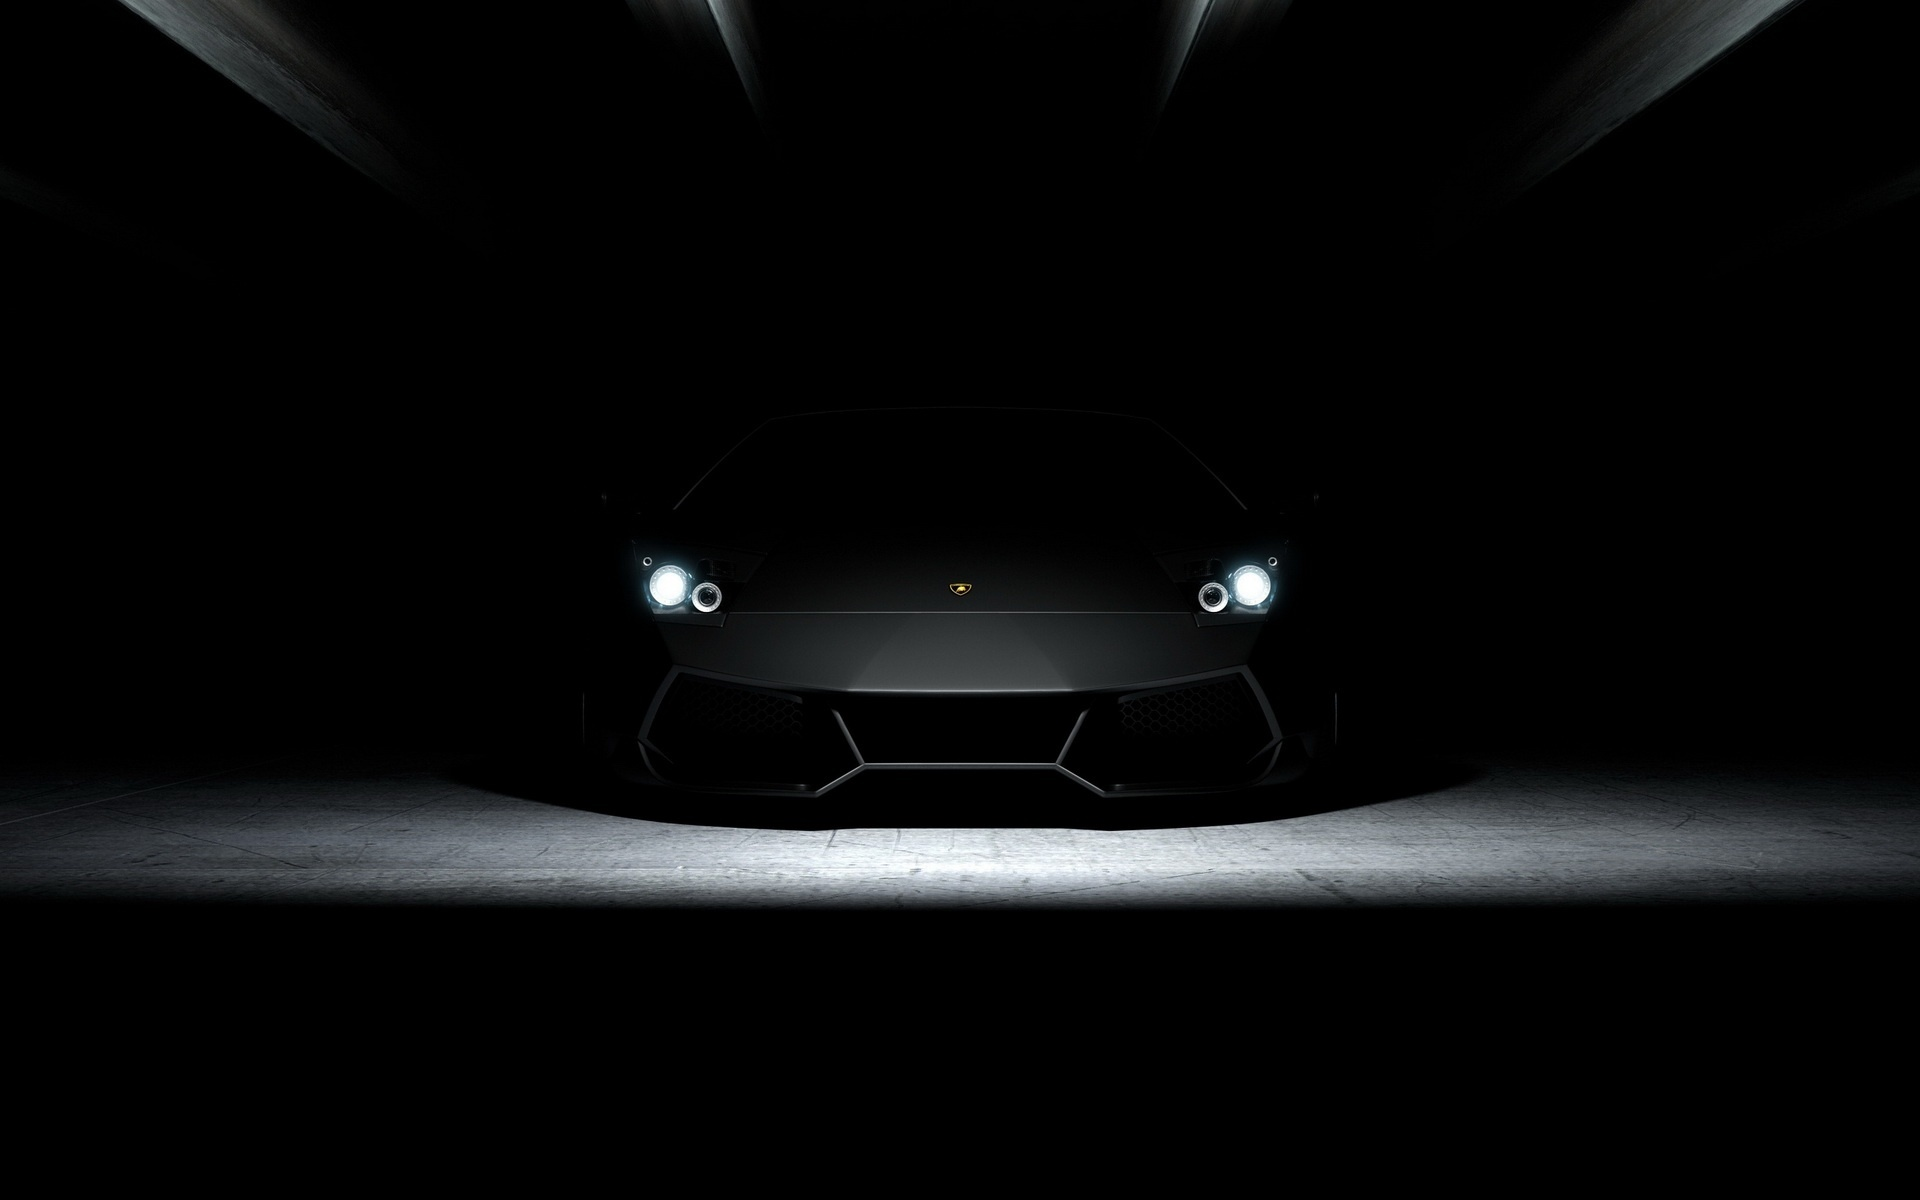 supercar wallpapers lamborghini uhd 4k